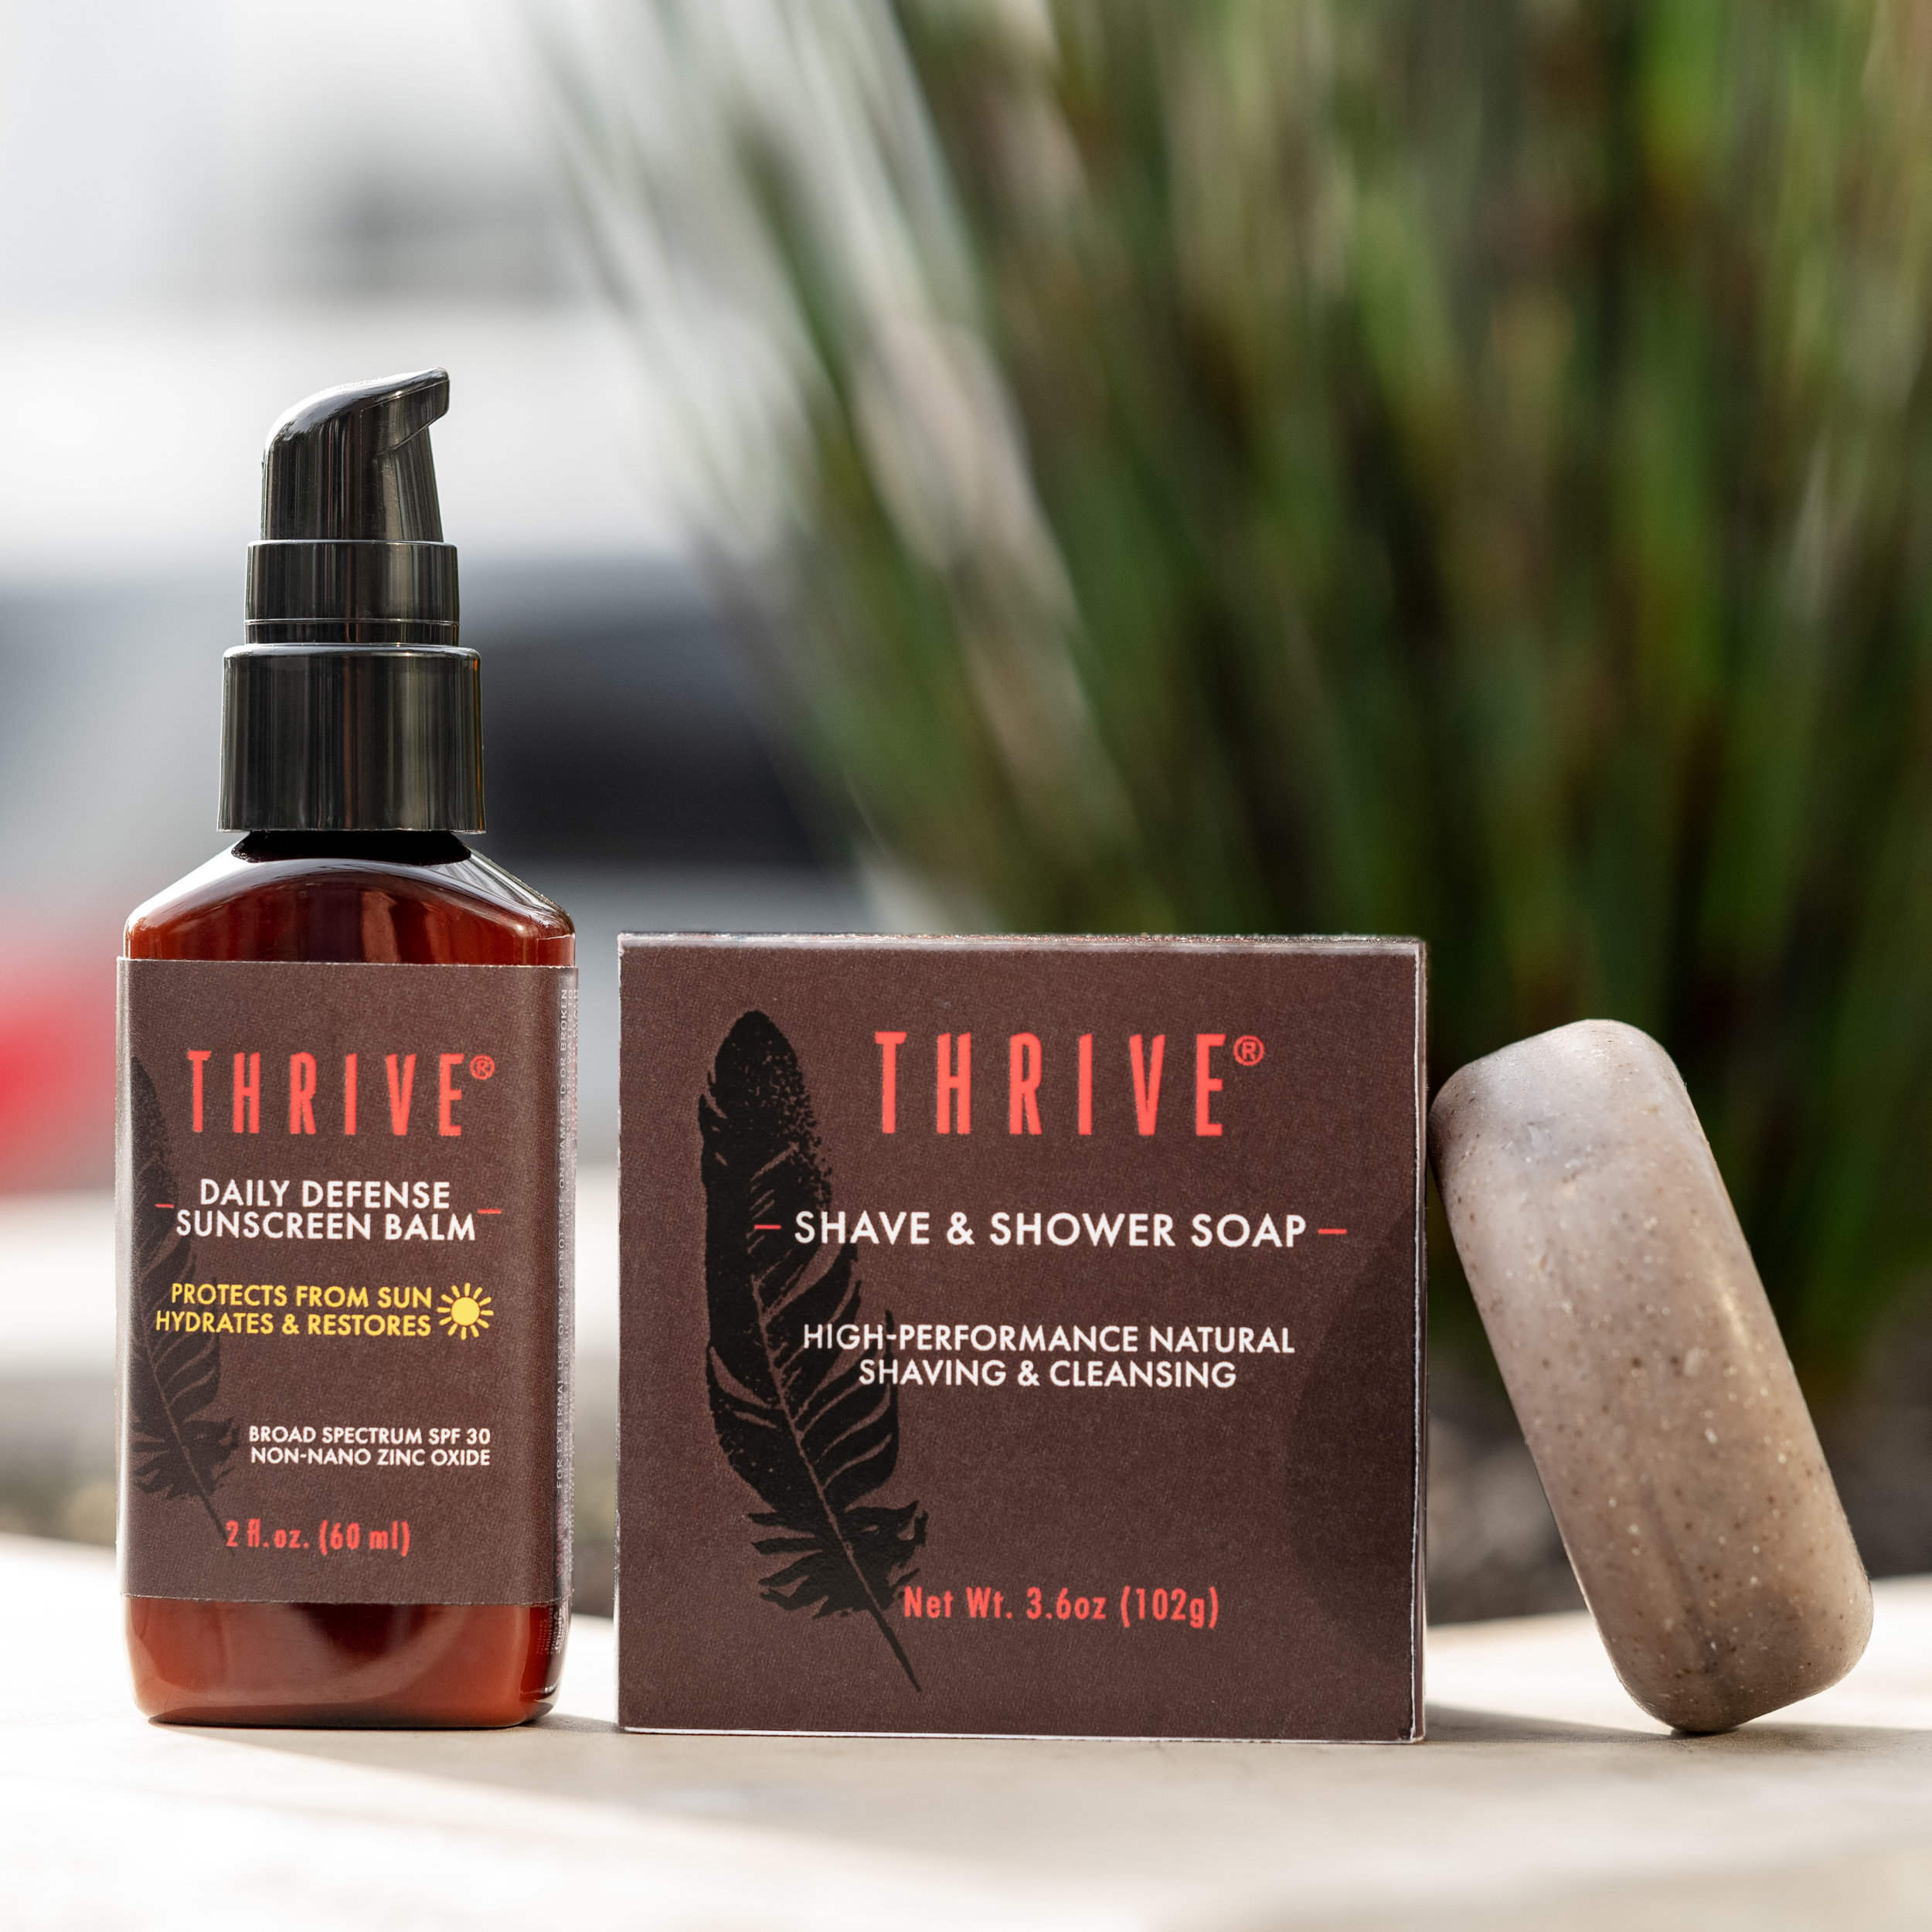 Thrivenaturalcare - A friend and founder of Thrive Natural Care, a premium line of men's grooming products with an innovative regenerative business model that goes beyond sustainability, came to me needing help for a special Amazon launch. I took on the challenge.